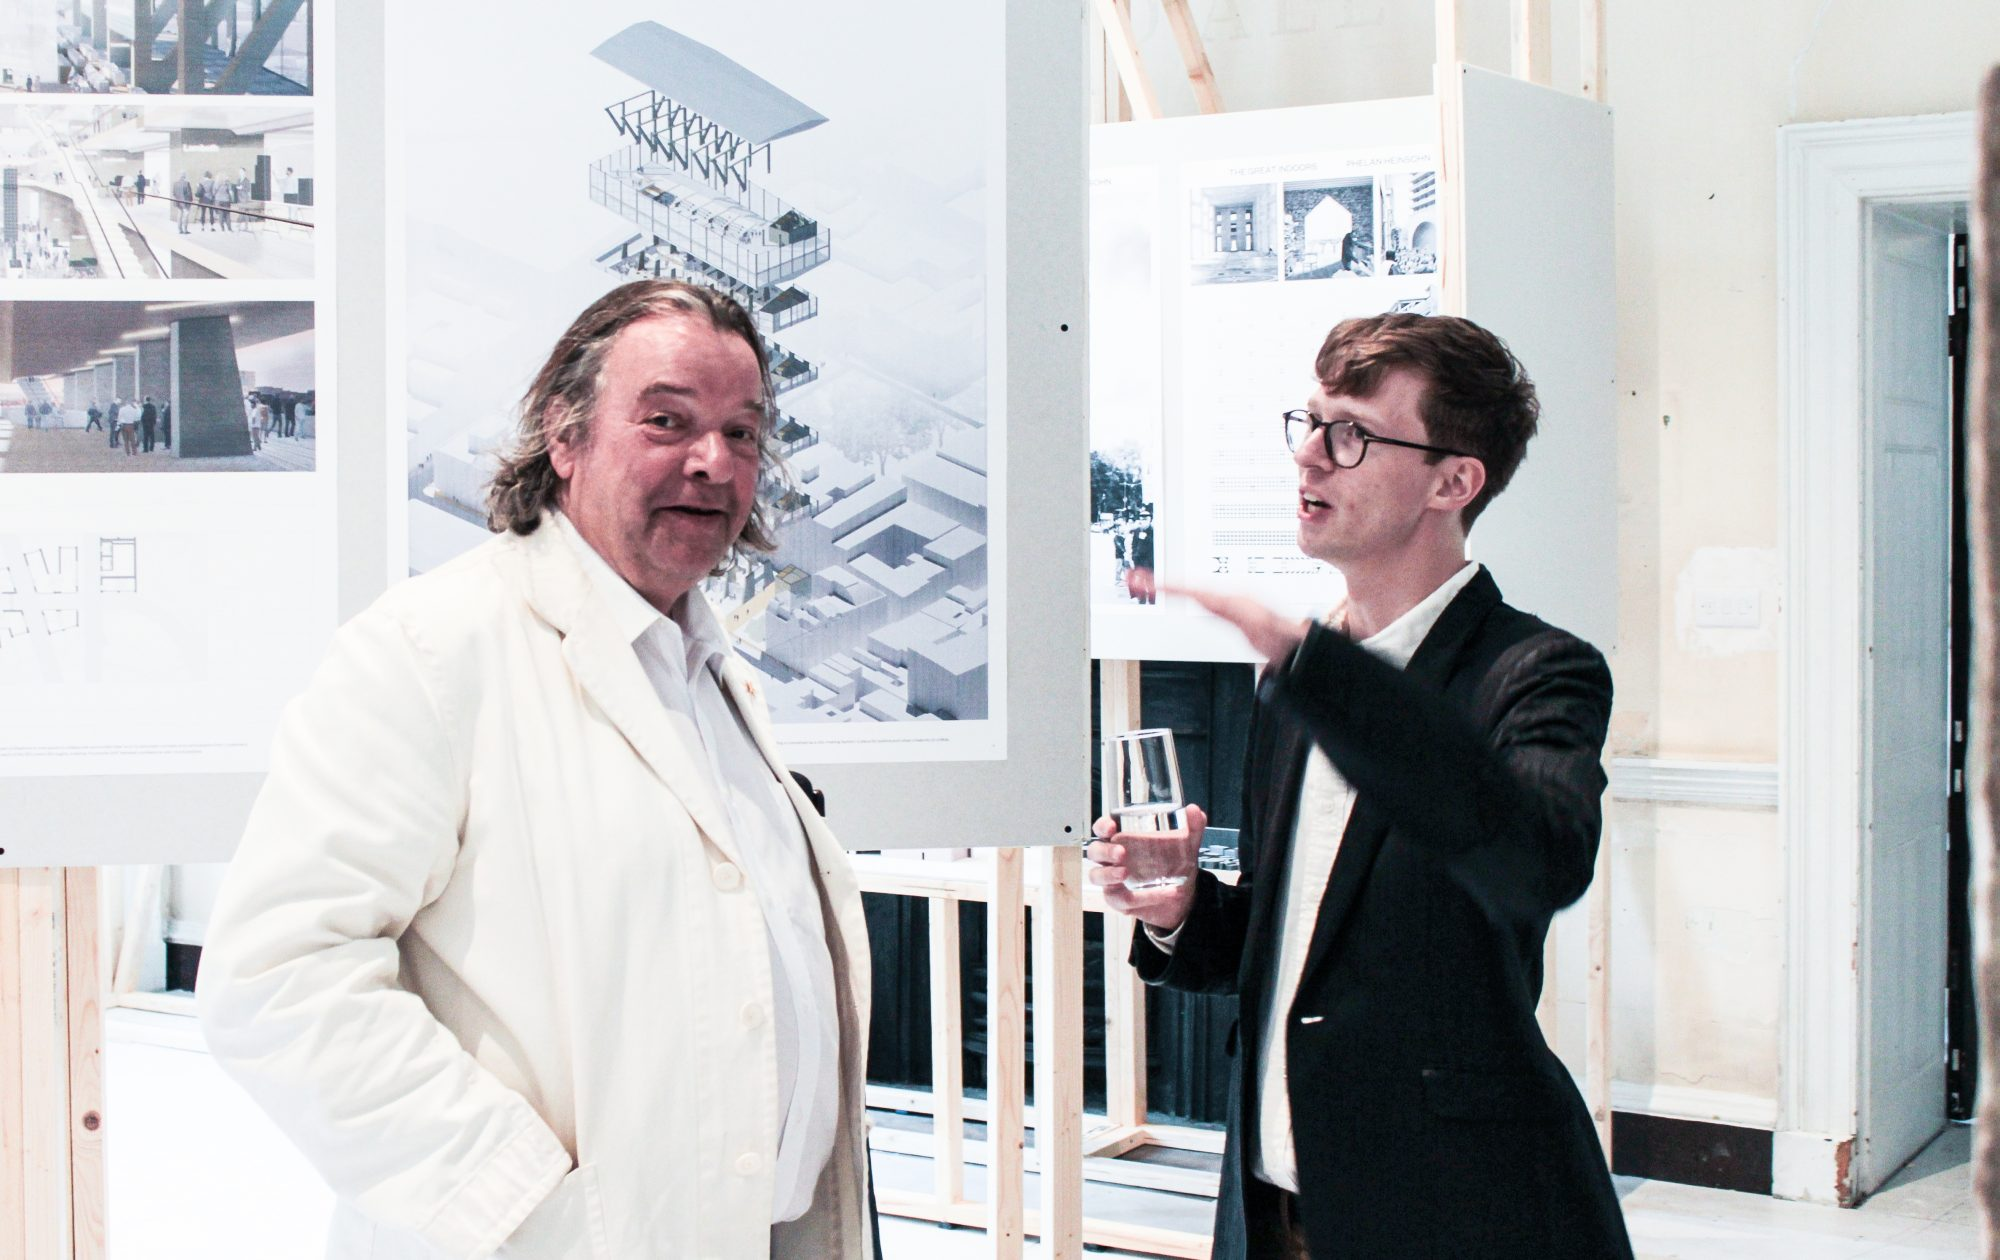 Fig. 4. With Will Alsop, photographed at the LSA's first summer show, London.